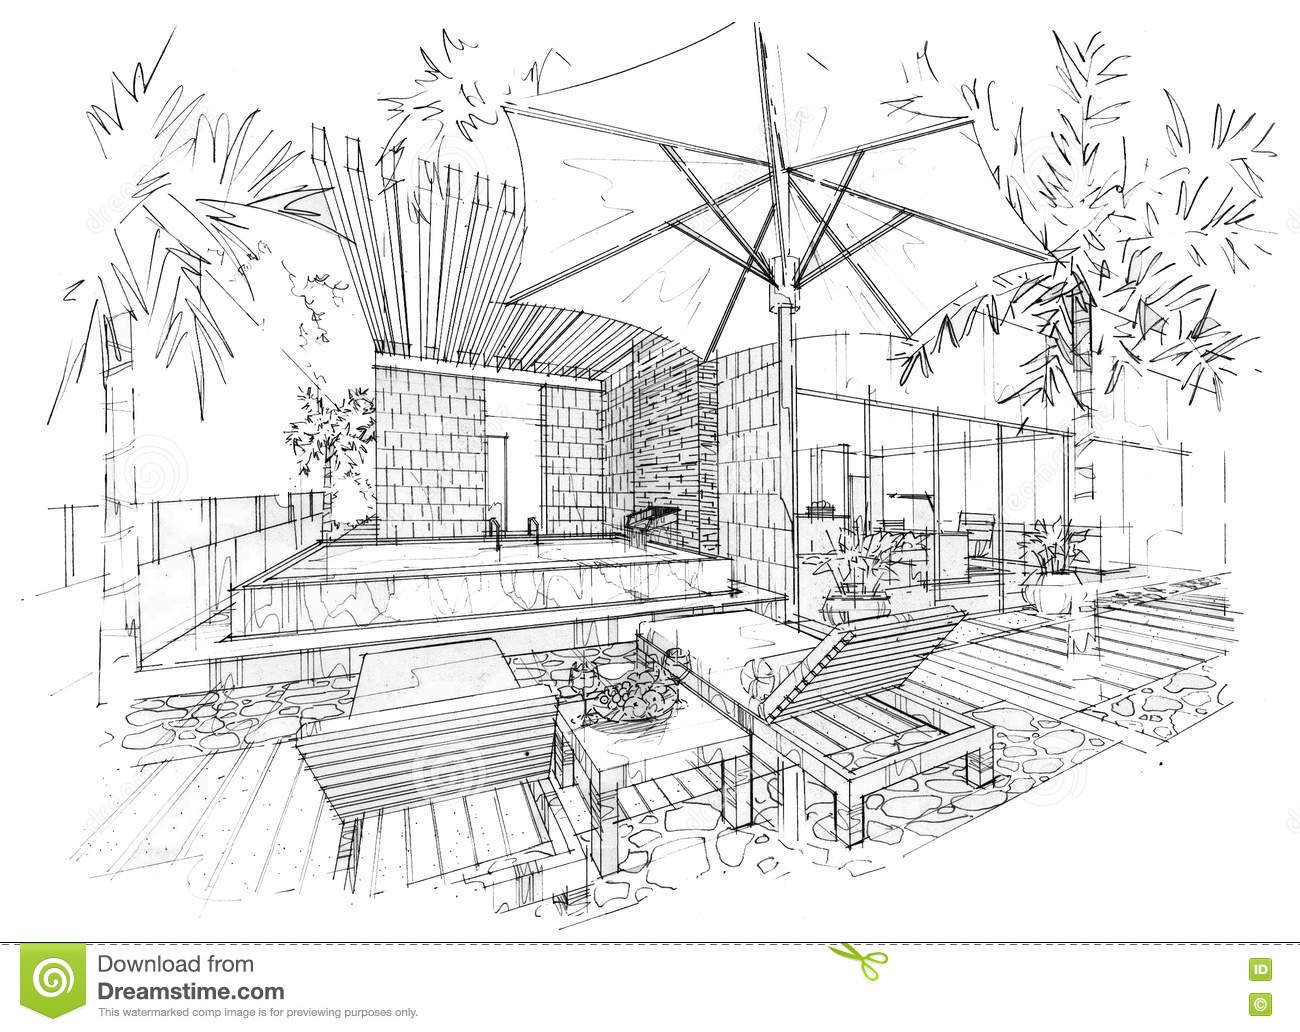 Sketch interior perspective swimming pool black and white for Swimming pool sketch